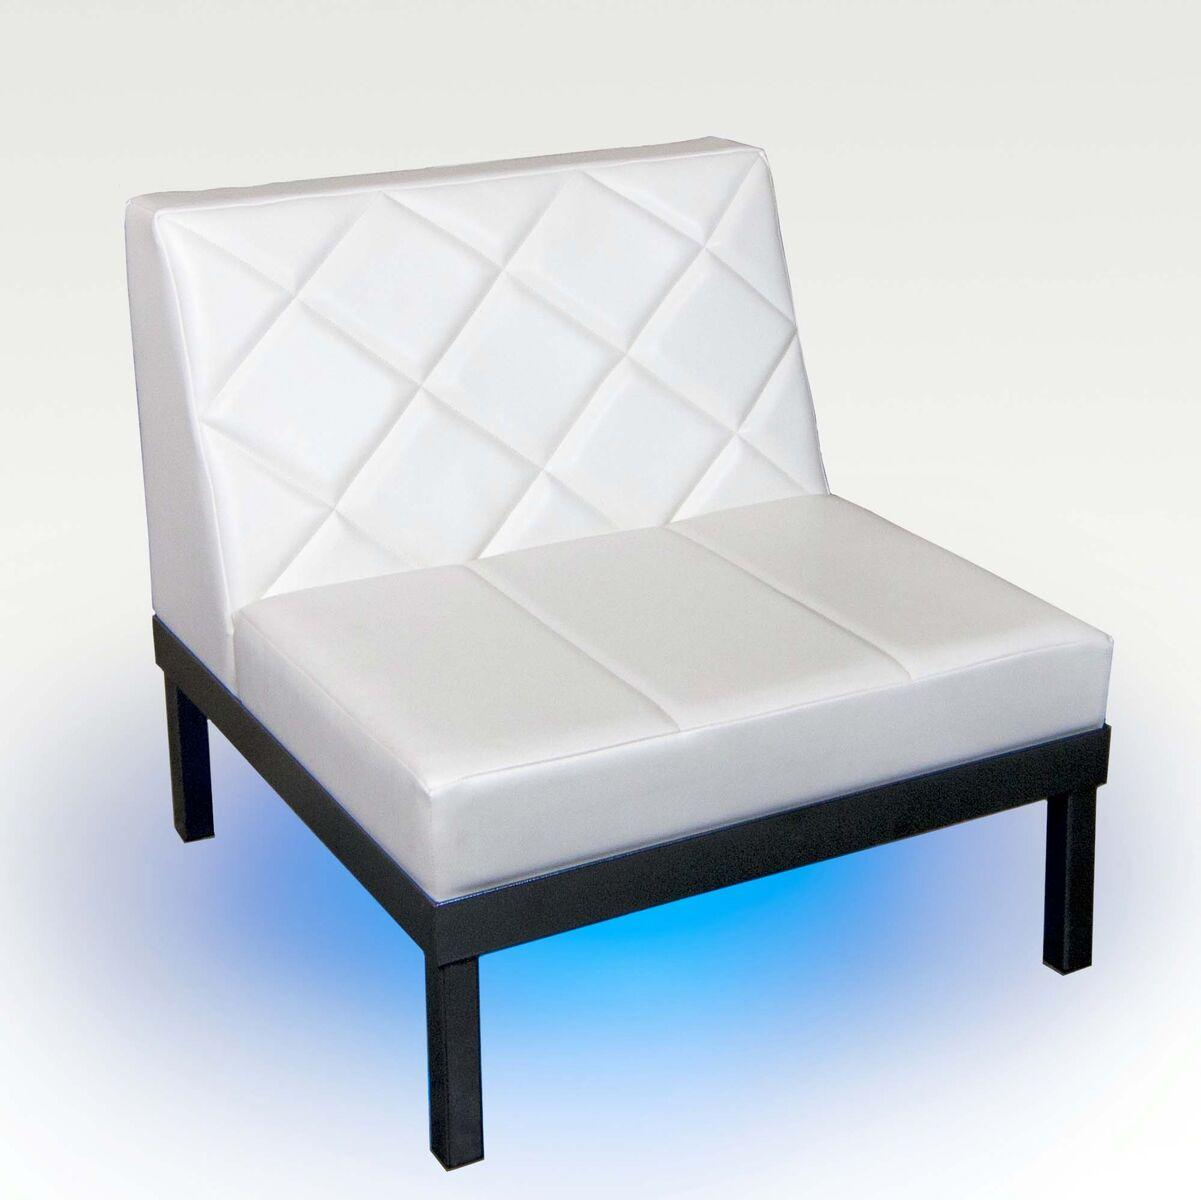 Amazing Furniture Rentals Totally Mod A Quest Events Company Andrewgaddart Wooden Chair Designs For Living Room Andrewgaddartcom